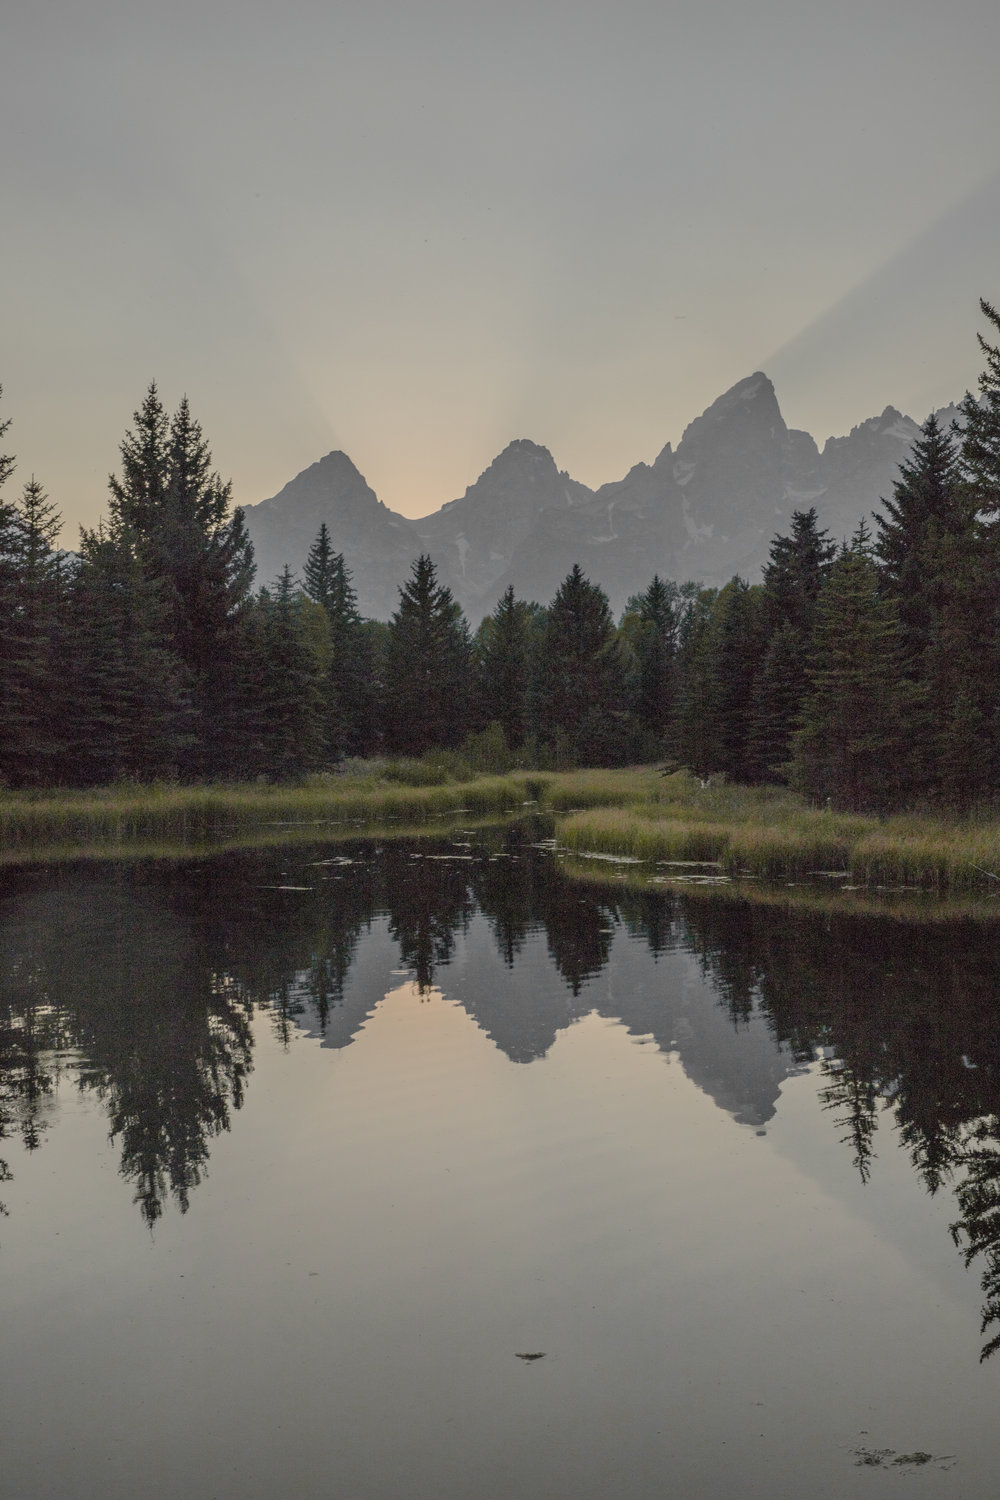 Sunset at Schwabacquers Landing in Grand Tetons.